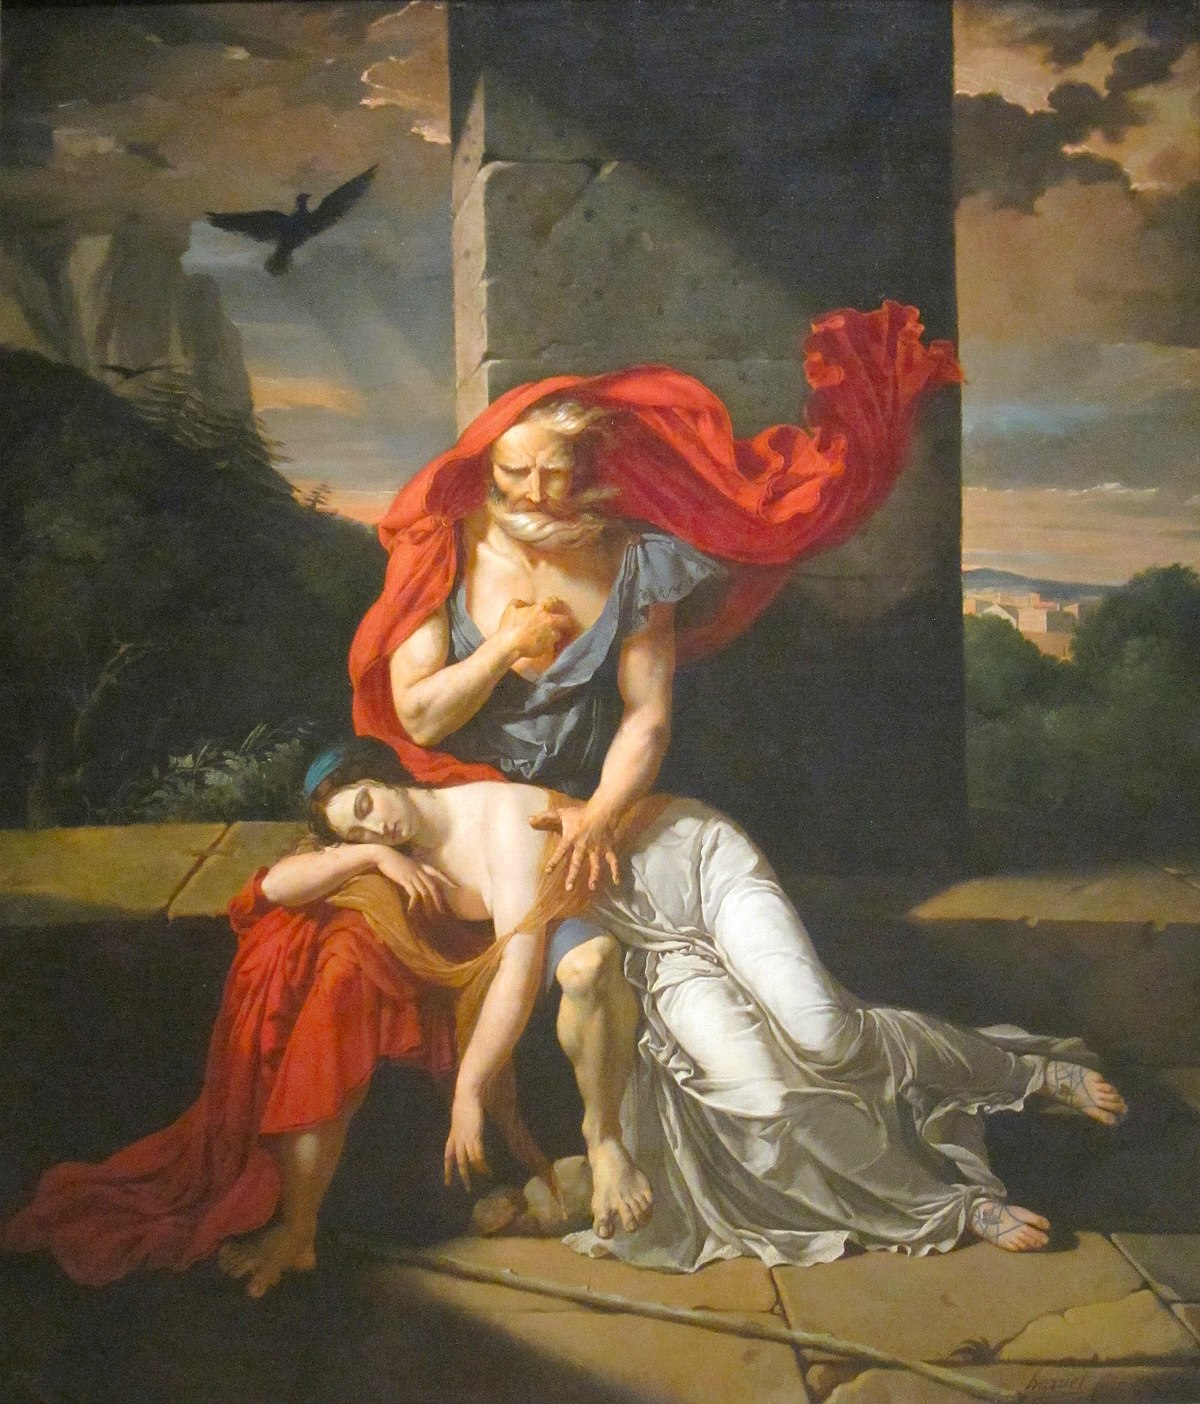 oedipus and his tragic character And free will alternatively, bernard knox's influential book oedipus at thebes:  sophocles' tragic hero and his time discusses the play in terms of the relation.